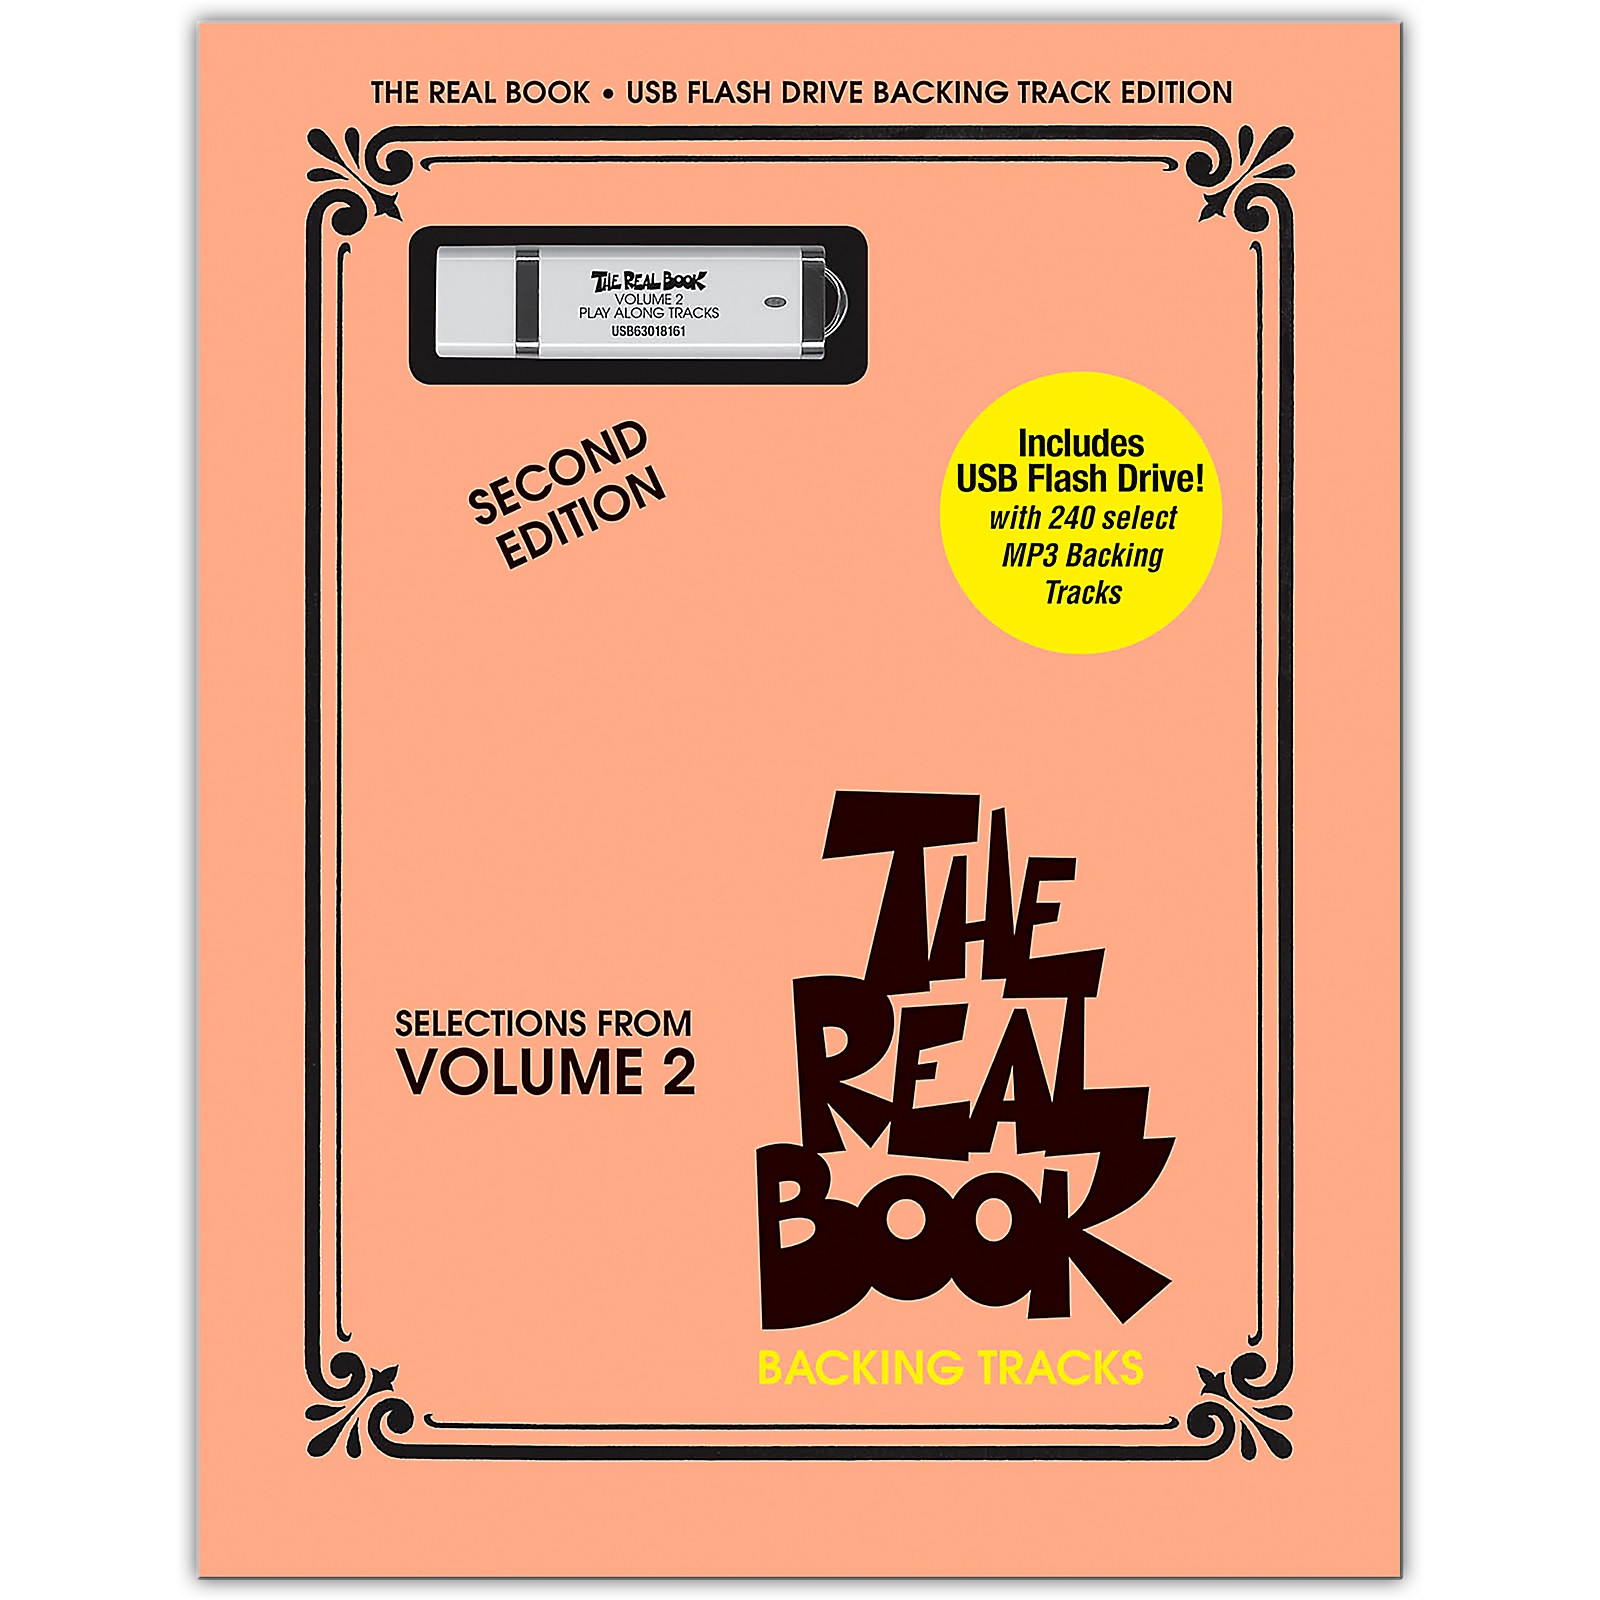 Hal Leonard The Real Book Backing Tracks - Selections From Volume 2, Second Edition on USB Flash Drive